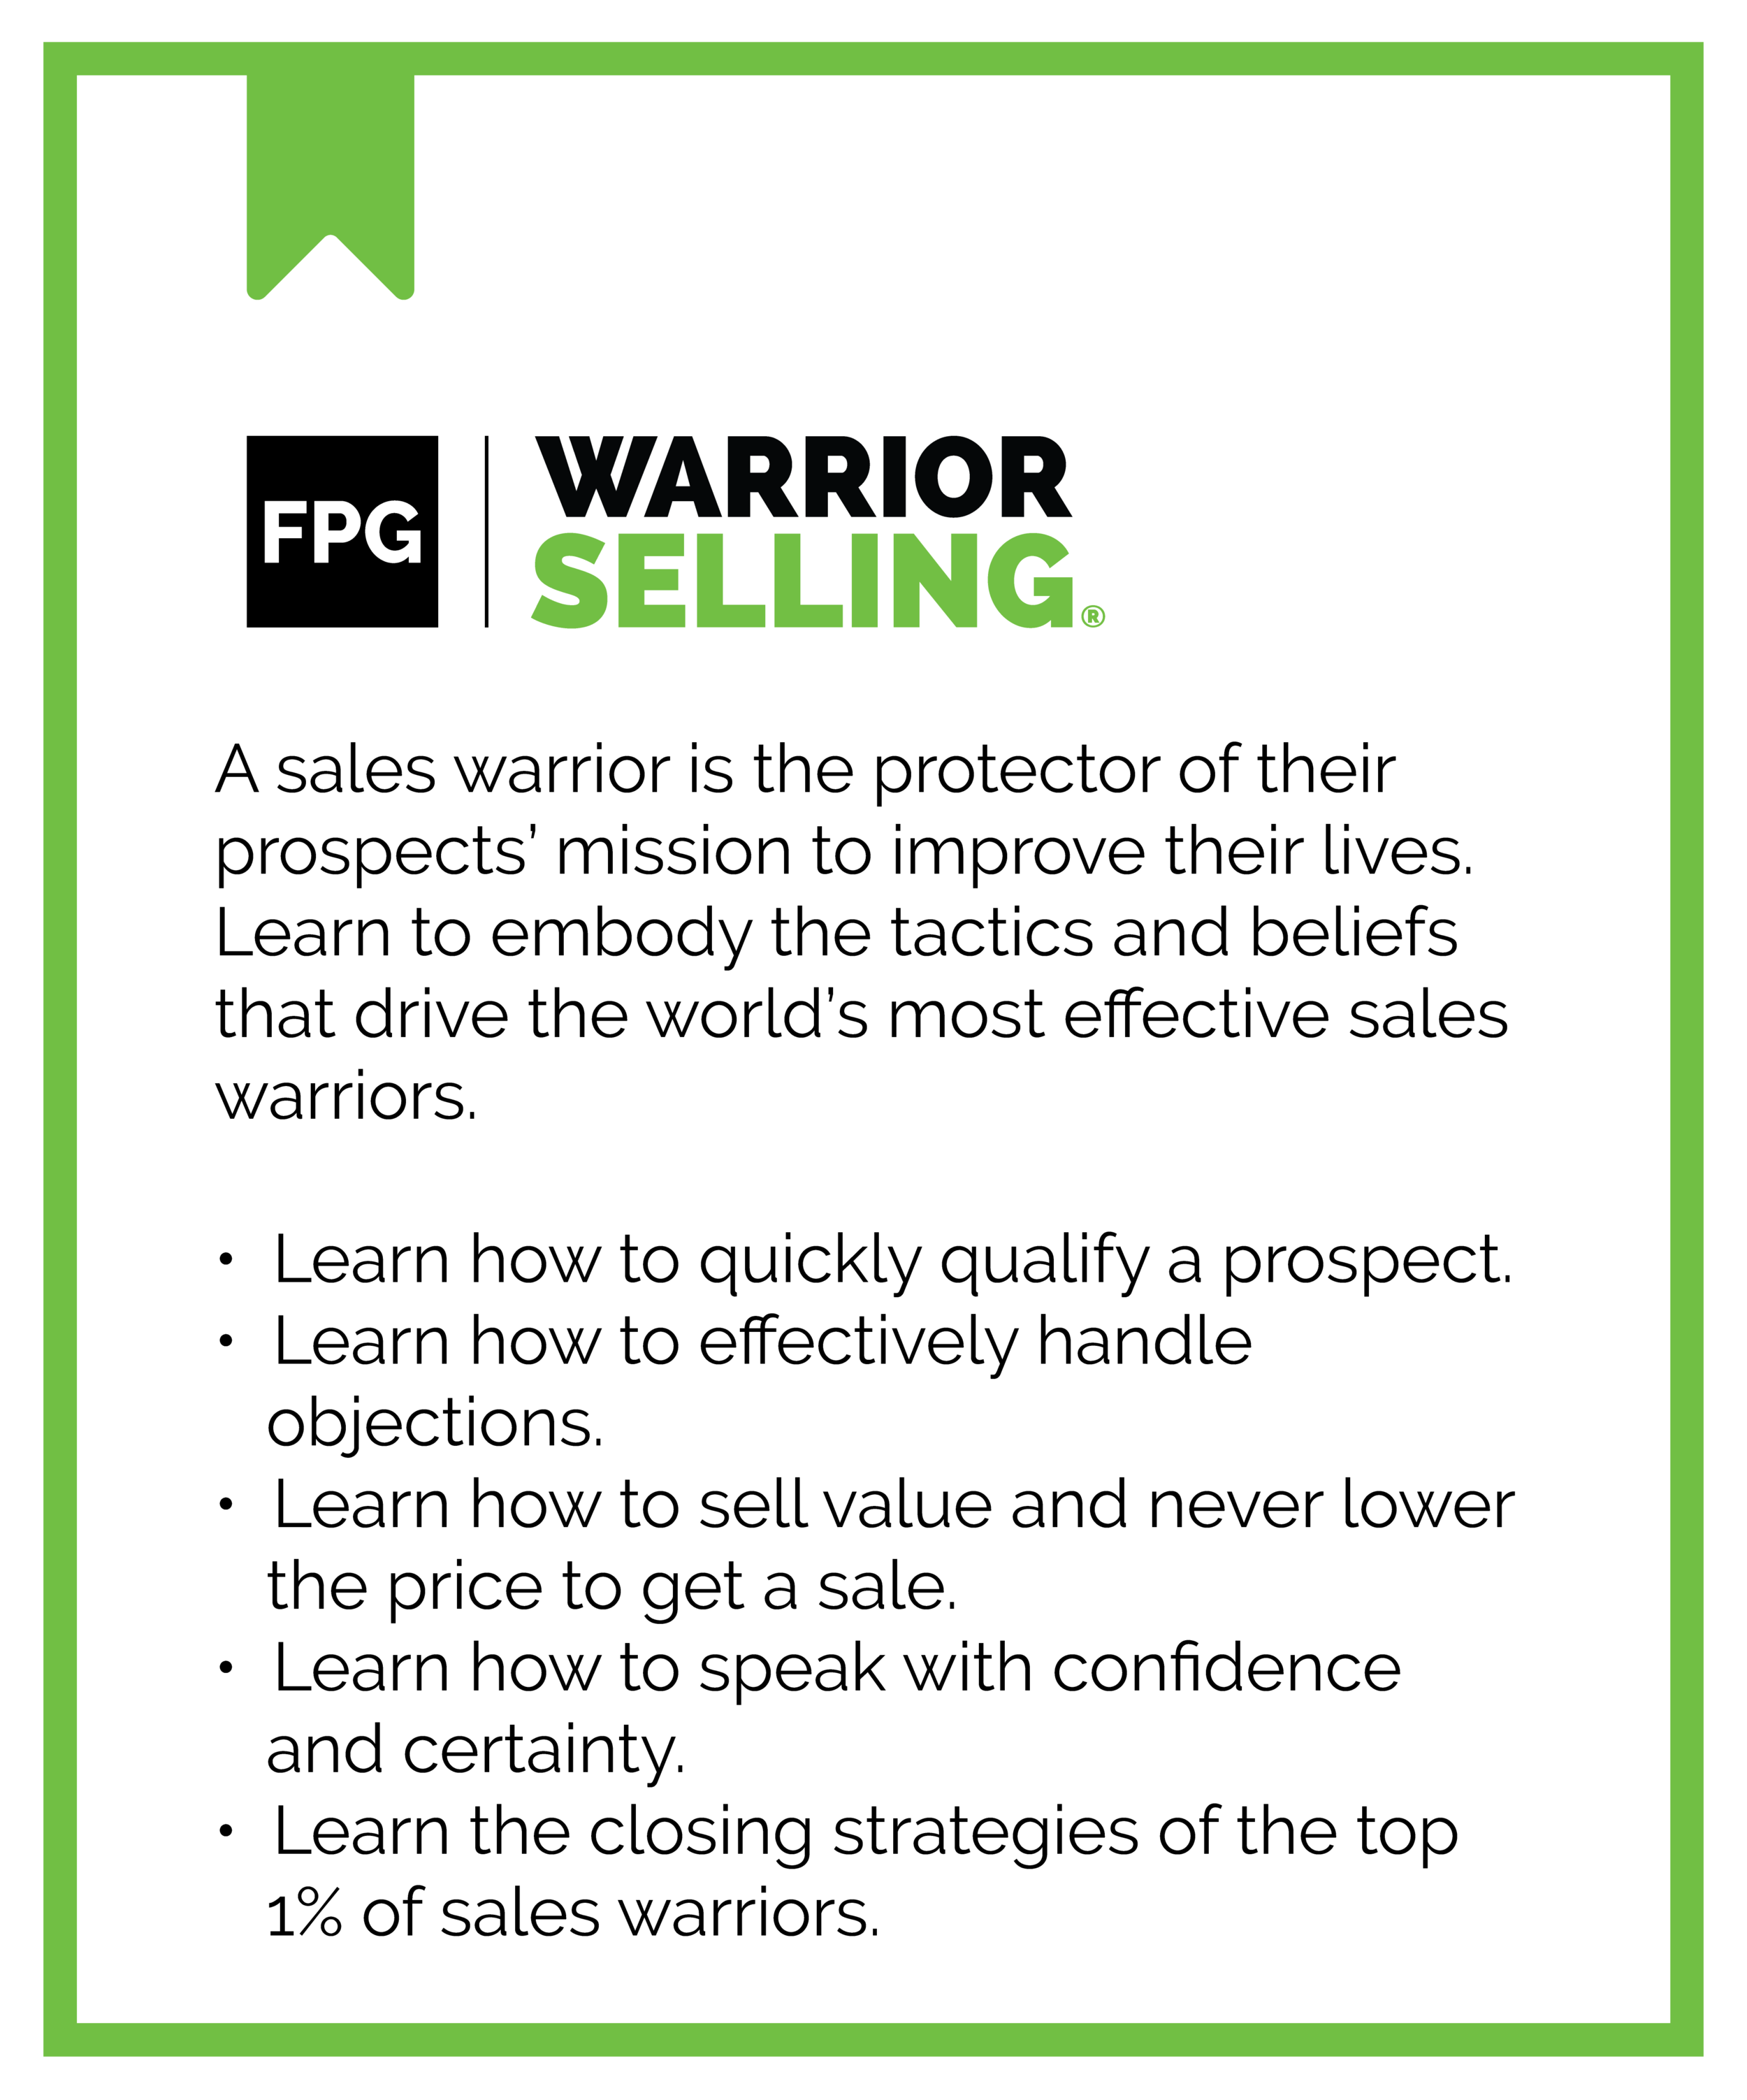 FPG Warrior Selling. A sales warrior is the protector of their prospects' mission to improve their lives. Learn to embody the tactics and beliefs that drive the world's most effective sales warriors. Learn how to quickly qualify a prospect. Learn how to effectively handle objections. Learn how to sell value you and never lower the price to get a sale. Learn how to speak with confidence and certainty. Learn the closing strategies of the top 1% of sales warriors.